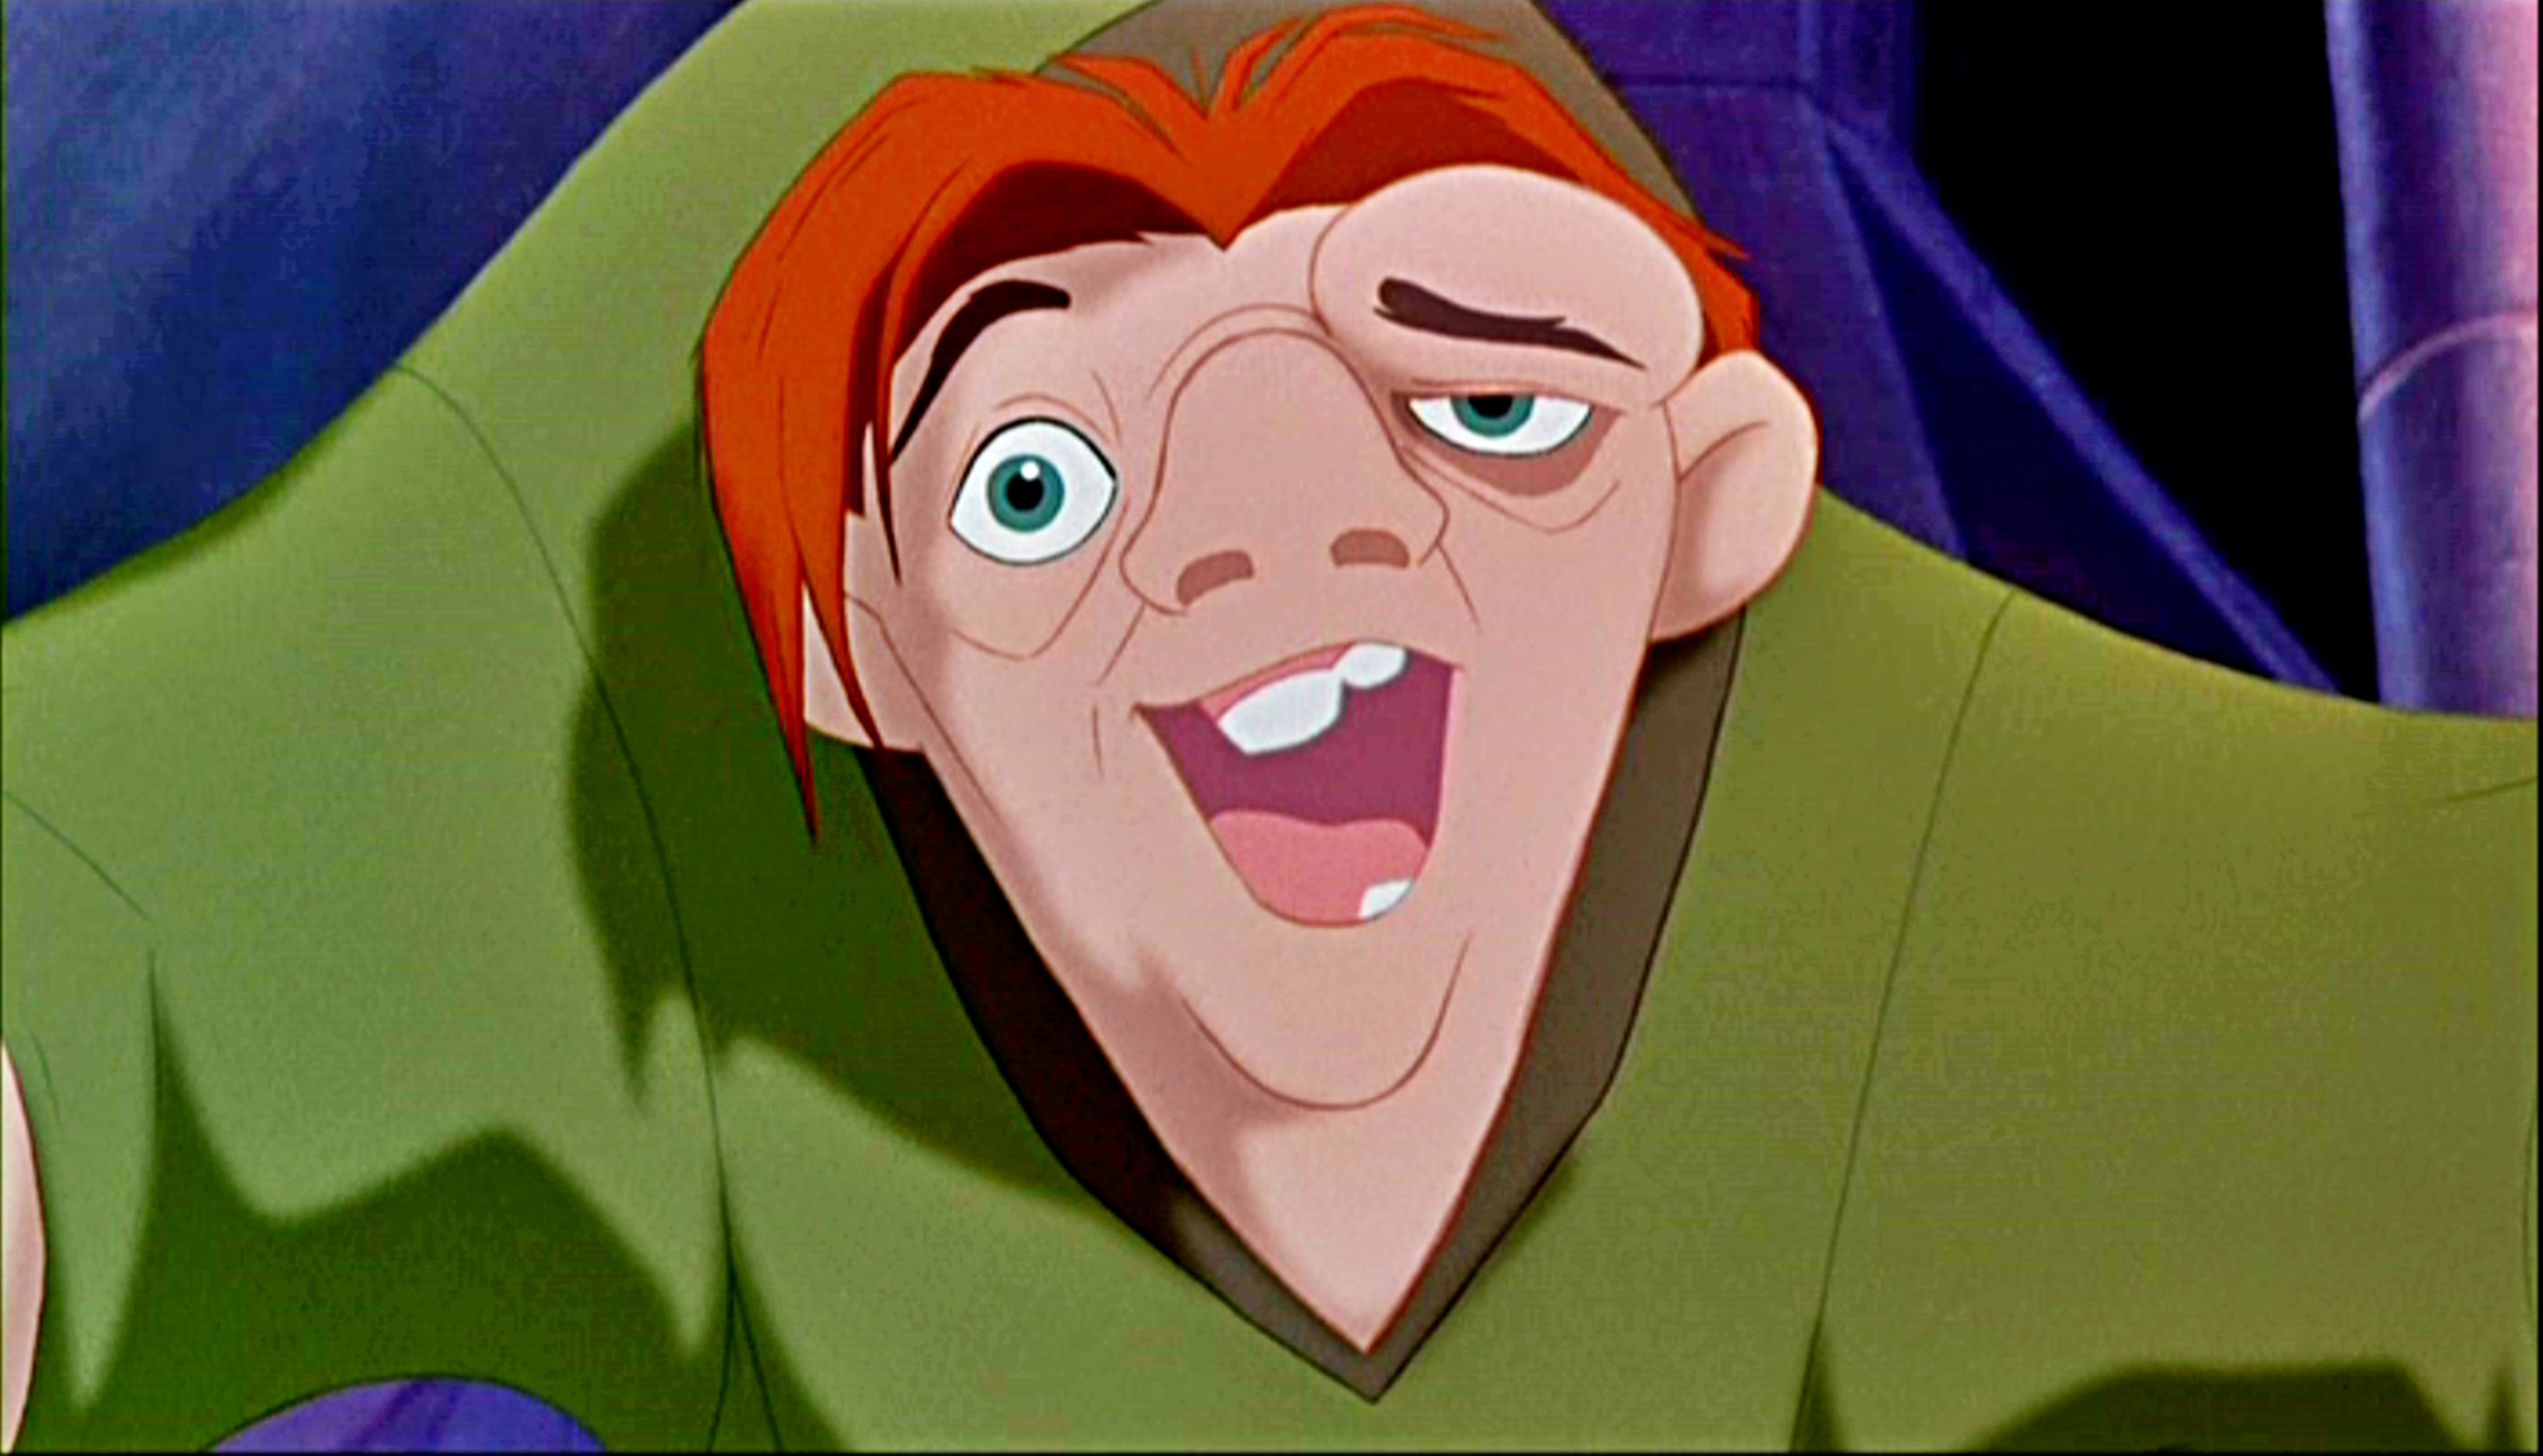 I Wish My Boyfriend Looked Like Quasimodo So I Didnt Have To Worry About Anyone Else Wanting To Snatch Him Up